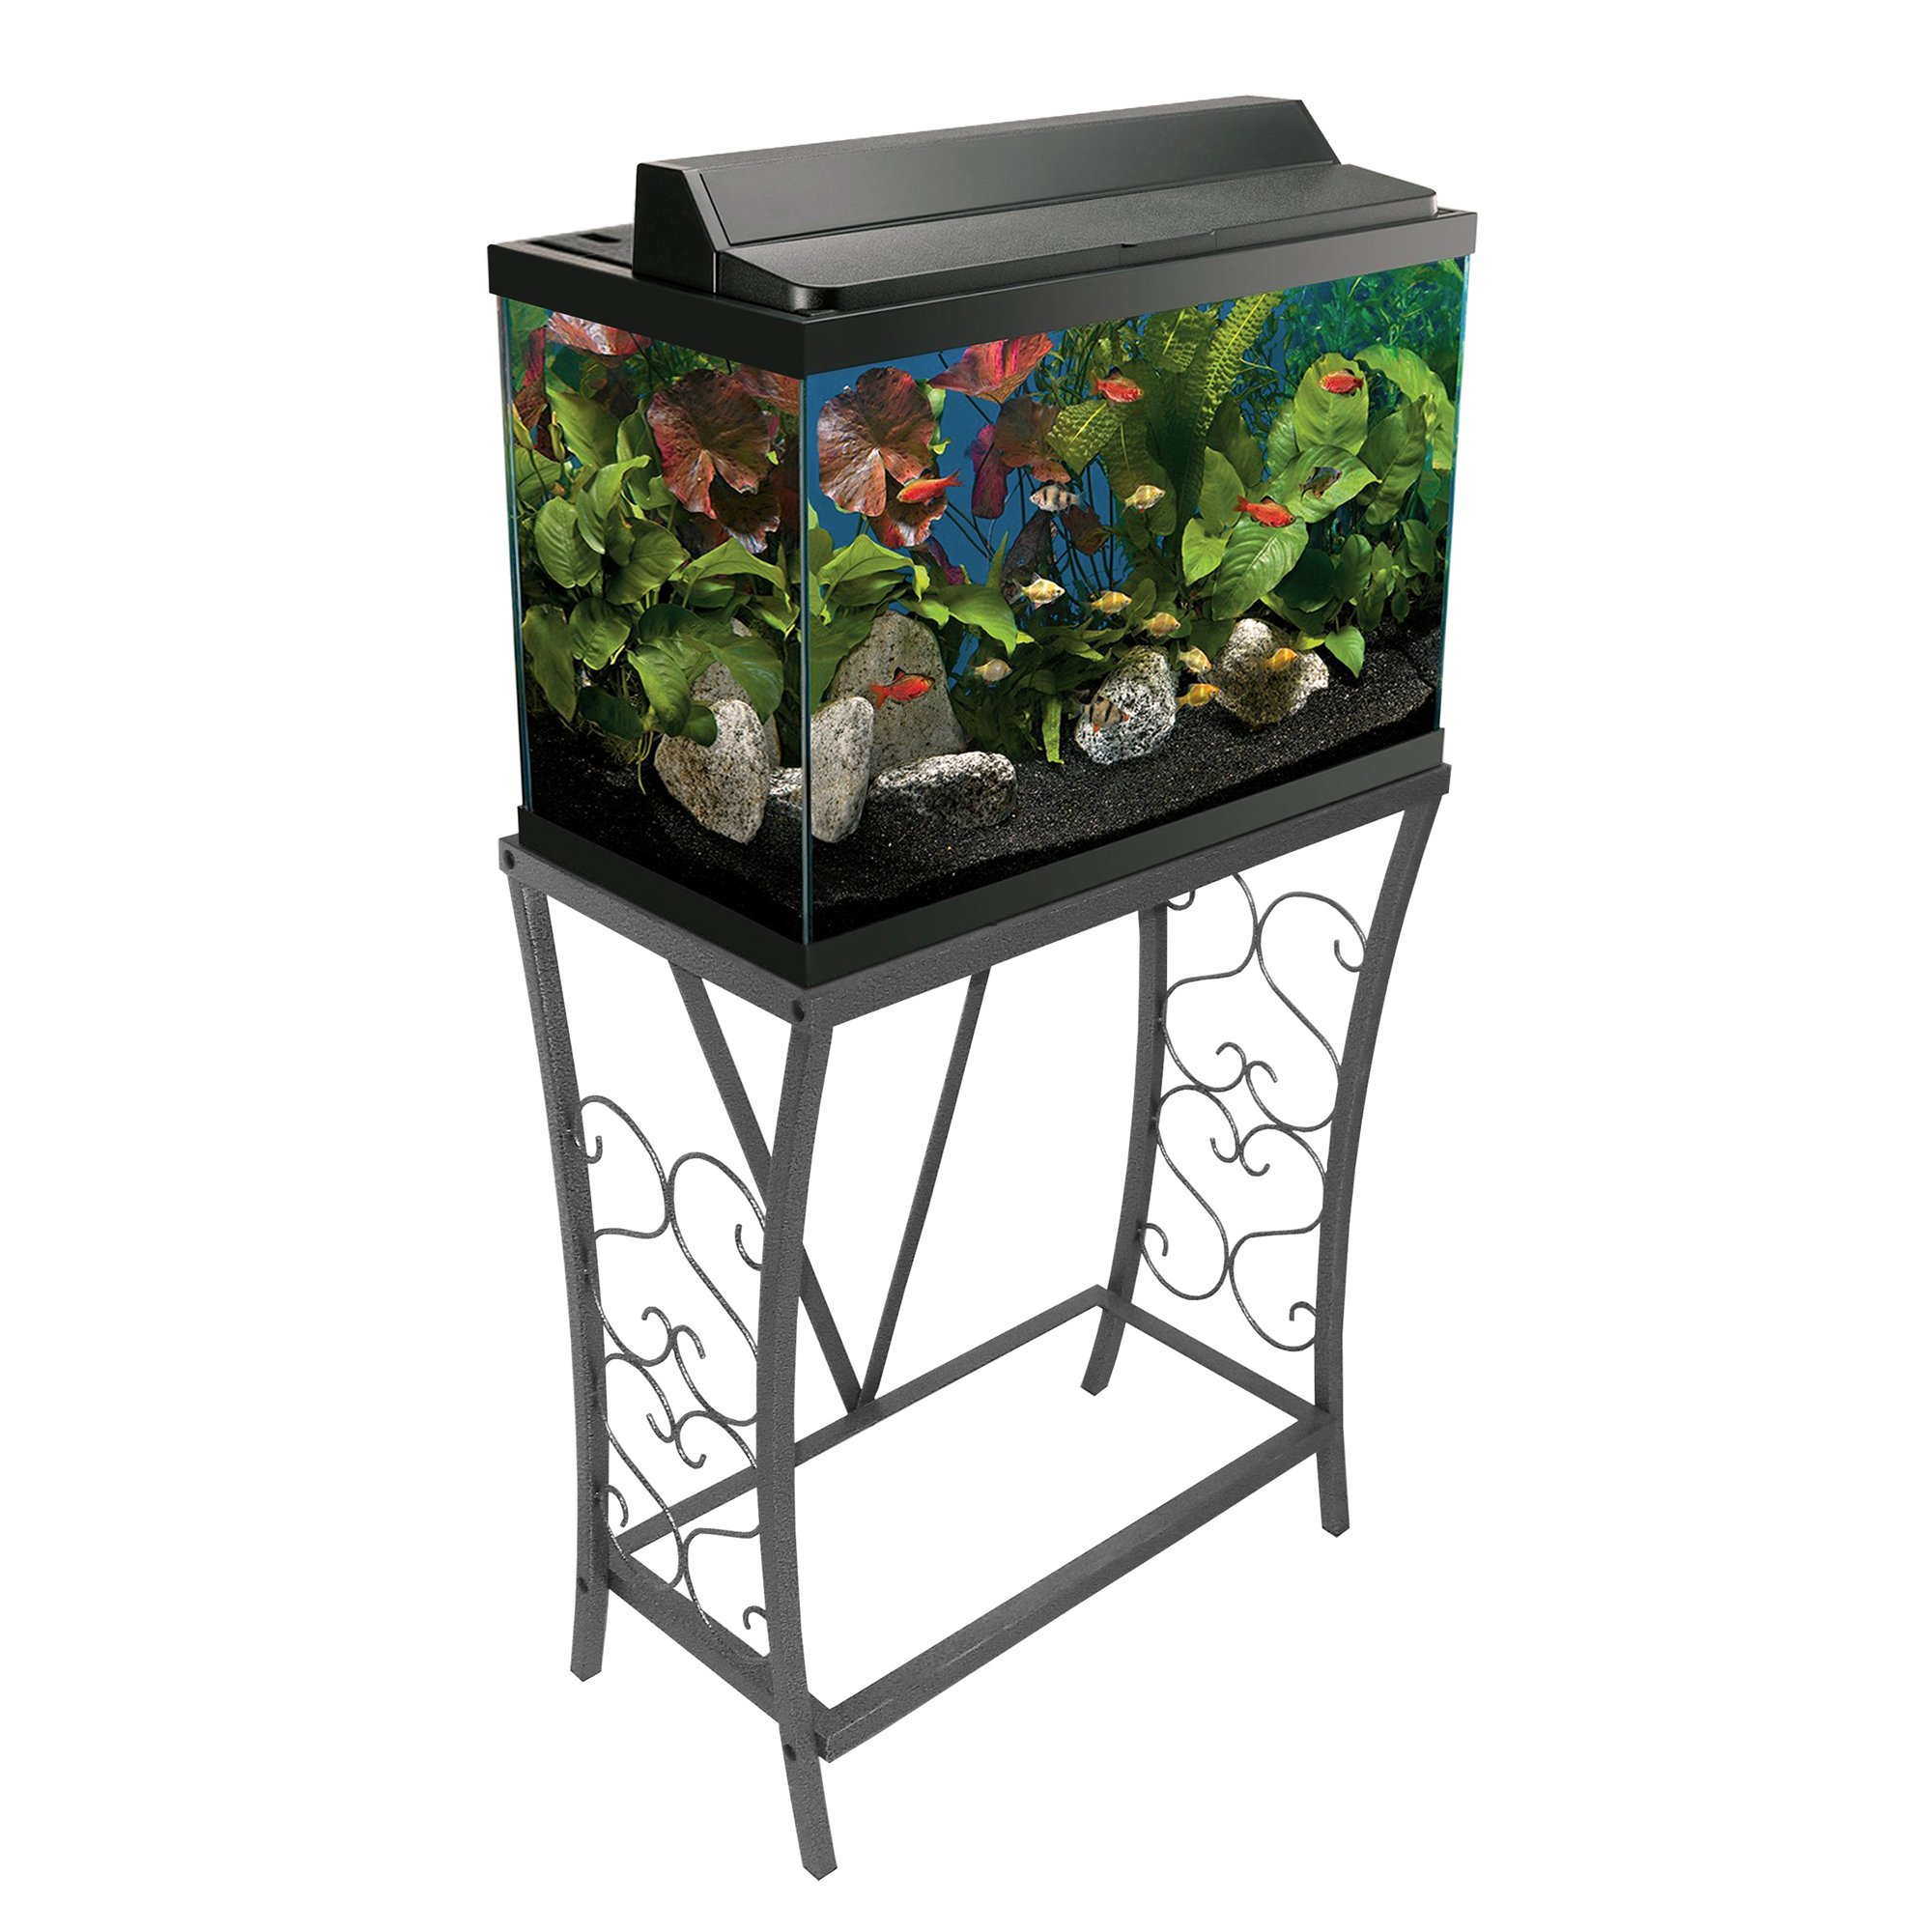 Aquarium stand petco fundamentals black scroll aquarium for Fish tank table stand